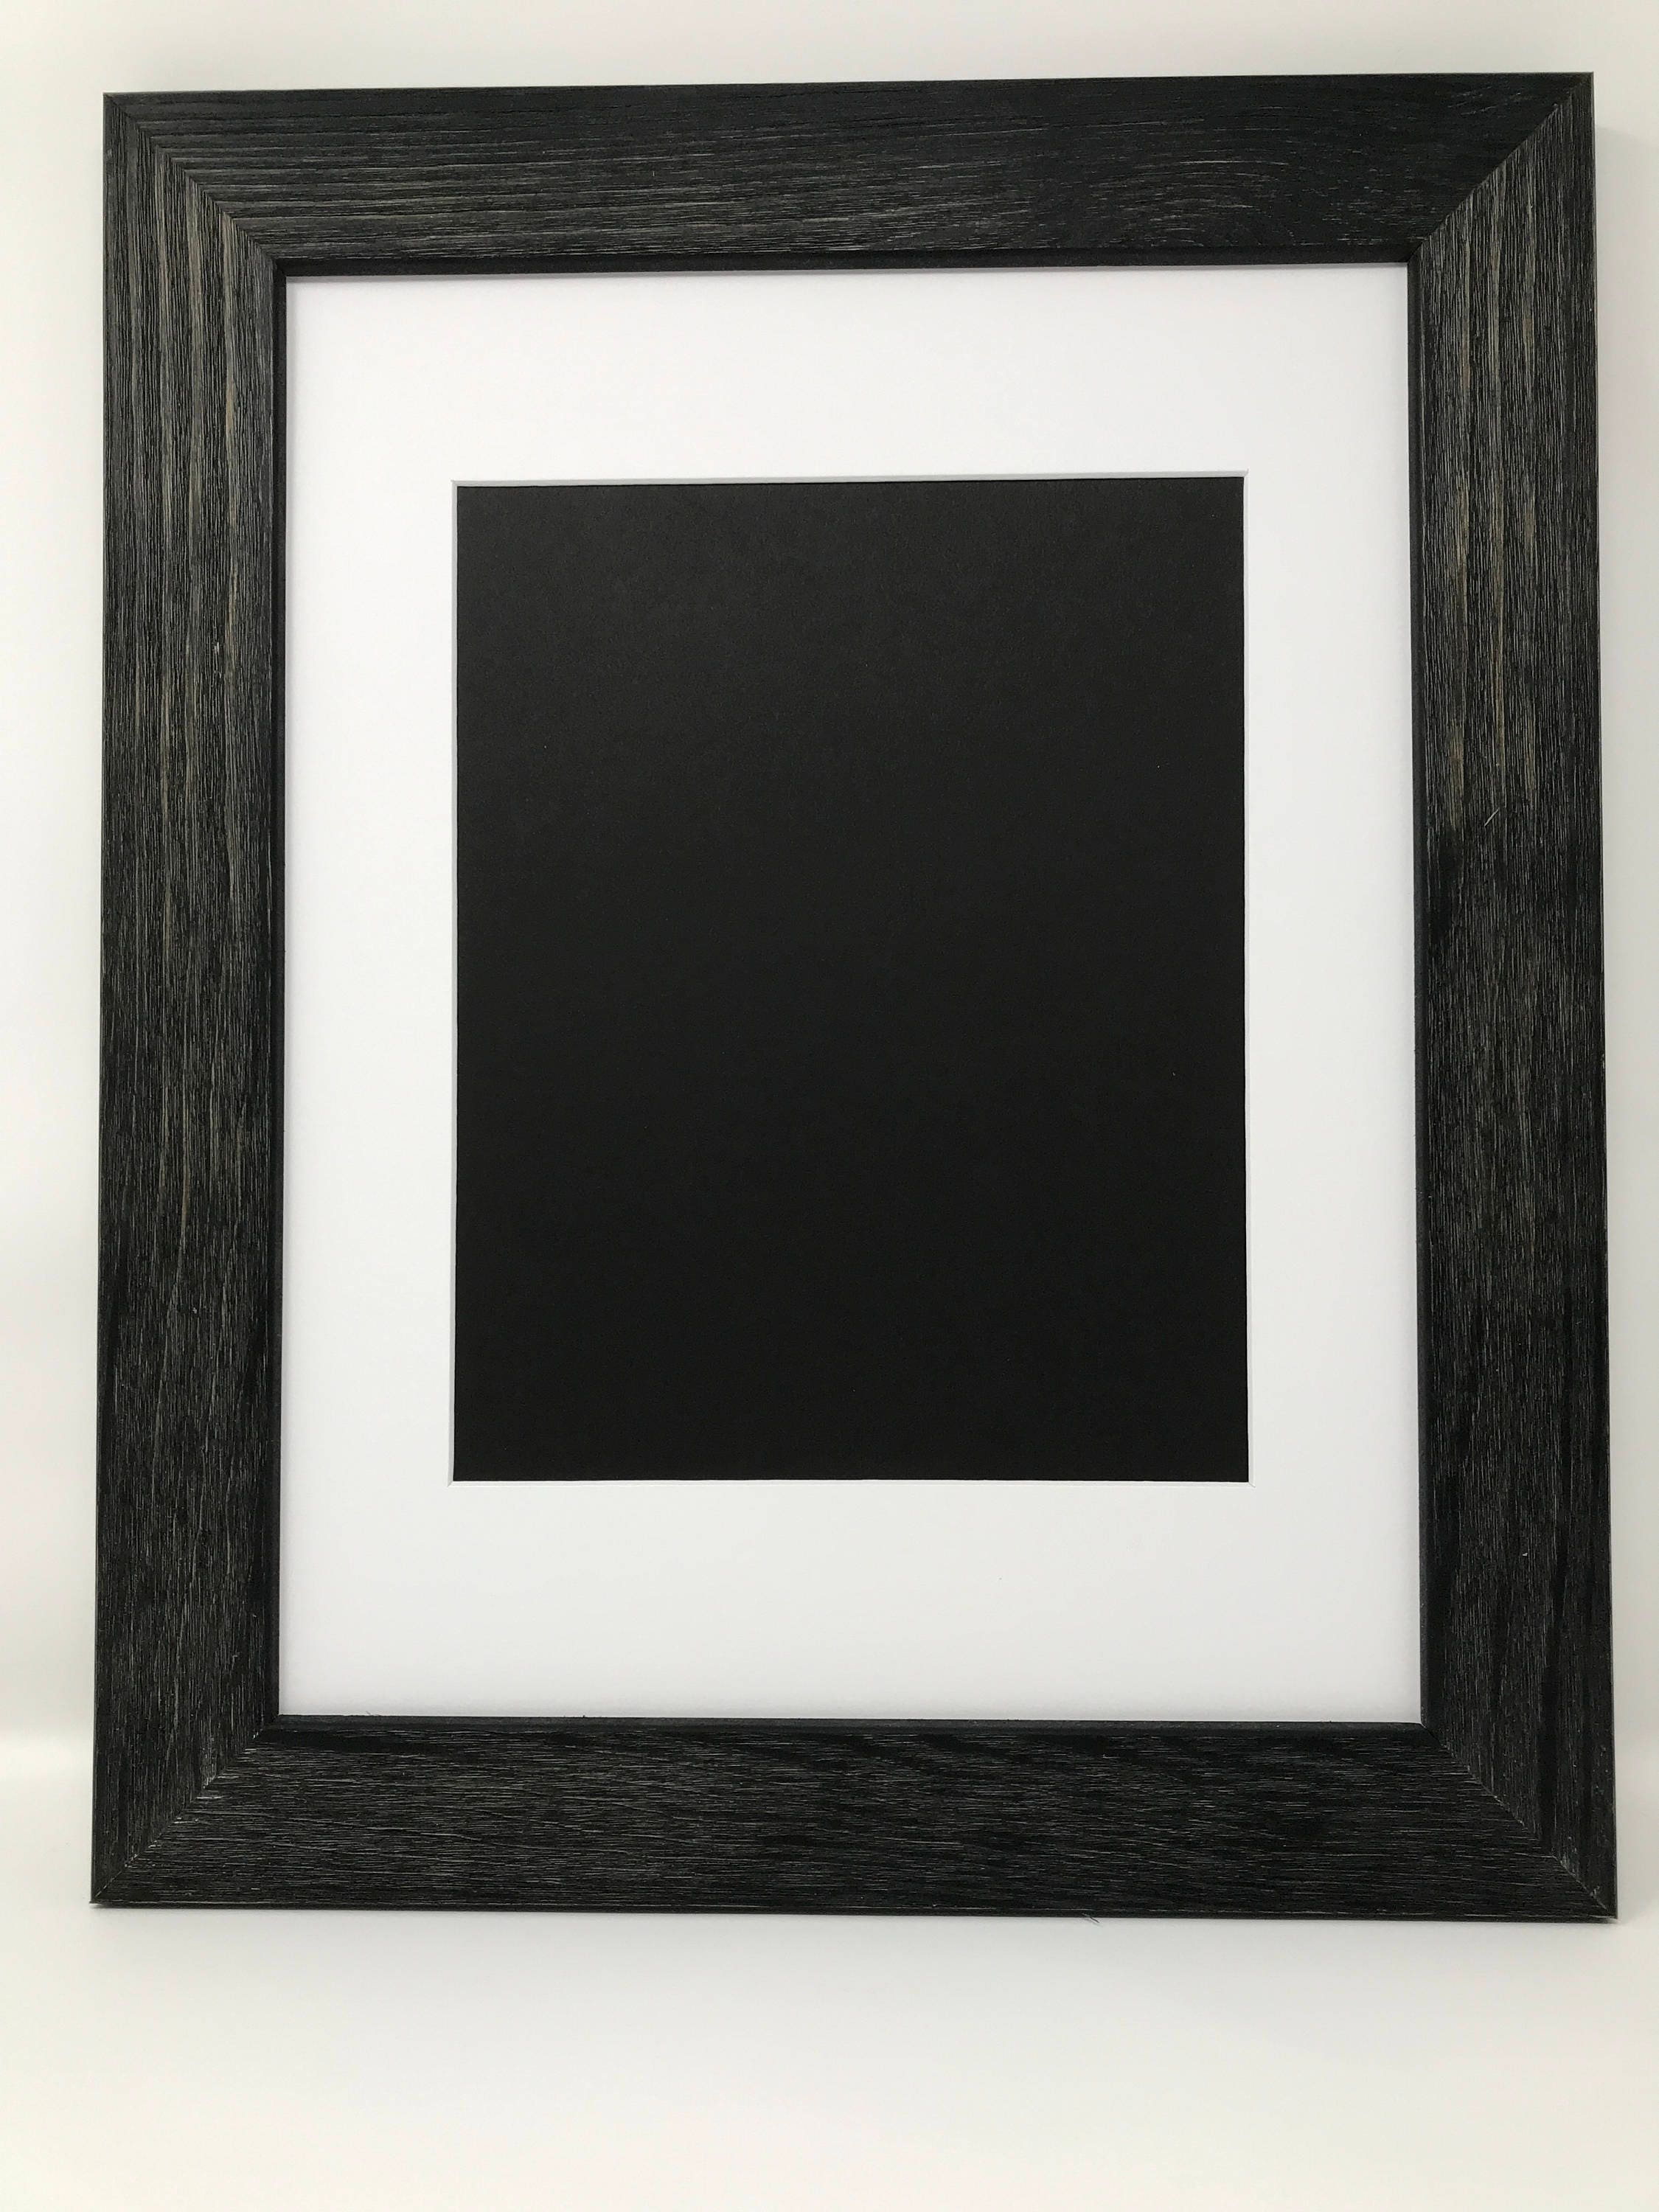 11x14 1.75 Rustic Black Solid Wood Picture Frame with White Mat Cut ...